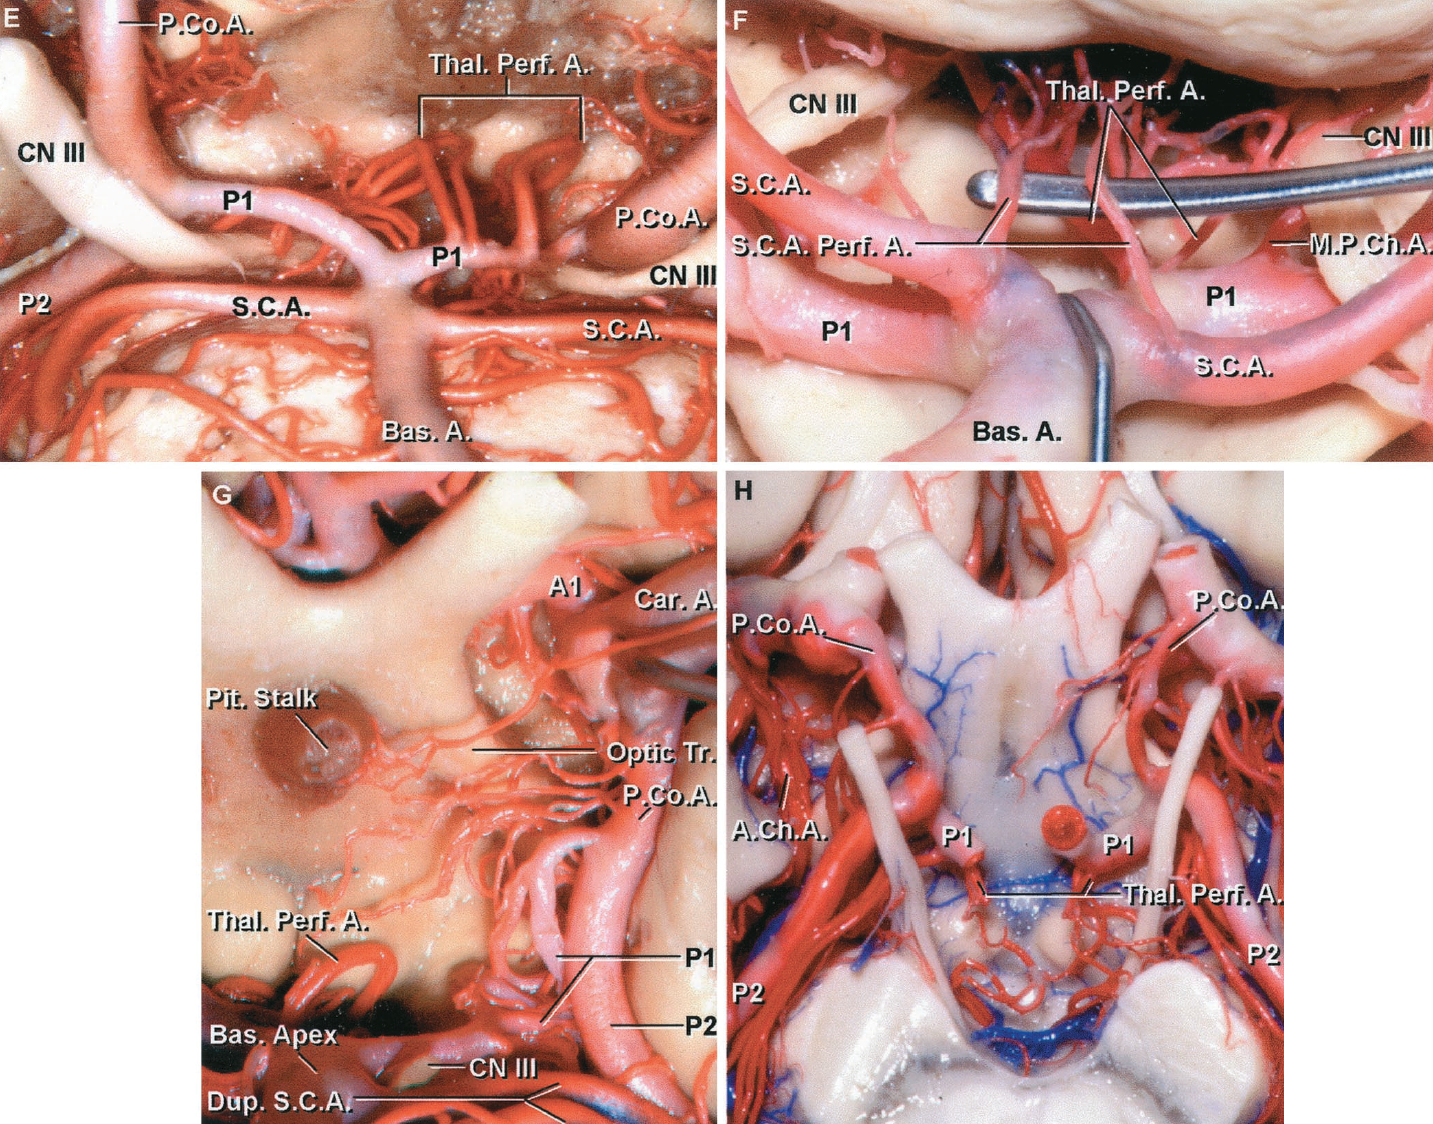 FIGURE 2.35 E-H. E, both P1s are smaller than the PComAs, but both P1s give rise to thalamoperforating arteries. The smaller, or left, P1 gives rise to more and larger perforating arteries than the larger, right, P1. F, the dissector holds up two perforating branches that arise from the origin of the superior cerebellar artery and enter the brain through the same area as the thalamoperforating arteries. G, the left PCA has a fetal origin of the PComA. A series of perforating arteries arises from the PComA and enters the diencephalon medial to the optic tract in the region of the mamillary bodies and floor of the third ventricle. The P1 pursues a tortuous course to its junction with the P2.H, inferior view. The lateral parts of the P1s give rise to thalamoperforating arteries. Perforating branches also arise from the PComA. A., artery; A.Ch.A., anterior choroidal artery; Bas., basilar; Car., carotid; CN, cranial nerve; Dup., duplicate; M.P.Ch.A., medial posterior choroidal artery; P.Co.A., posterior communicating artery; Perf., perforating; Pit., pituitary; S.C.A., superior cerebellar artery; Thal. Perf., thalamoperforating; Tr., tract.